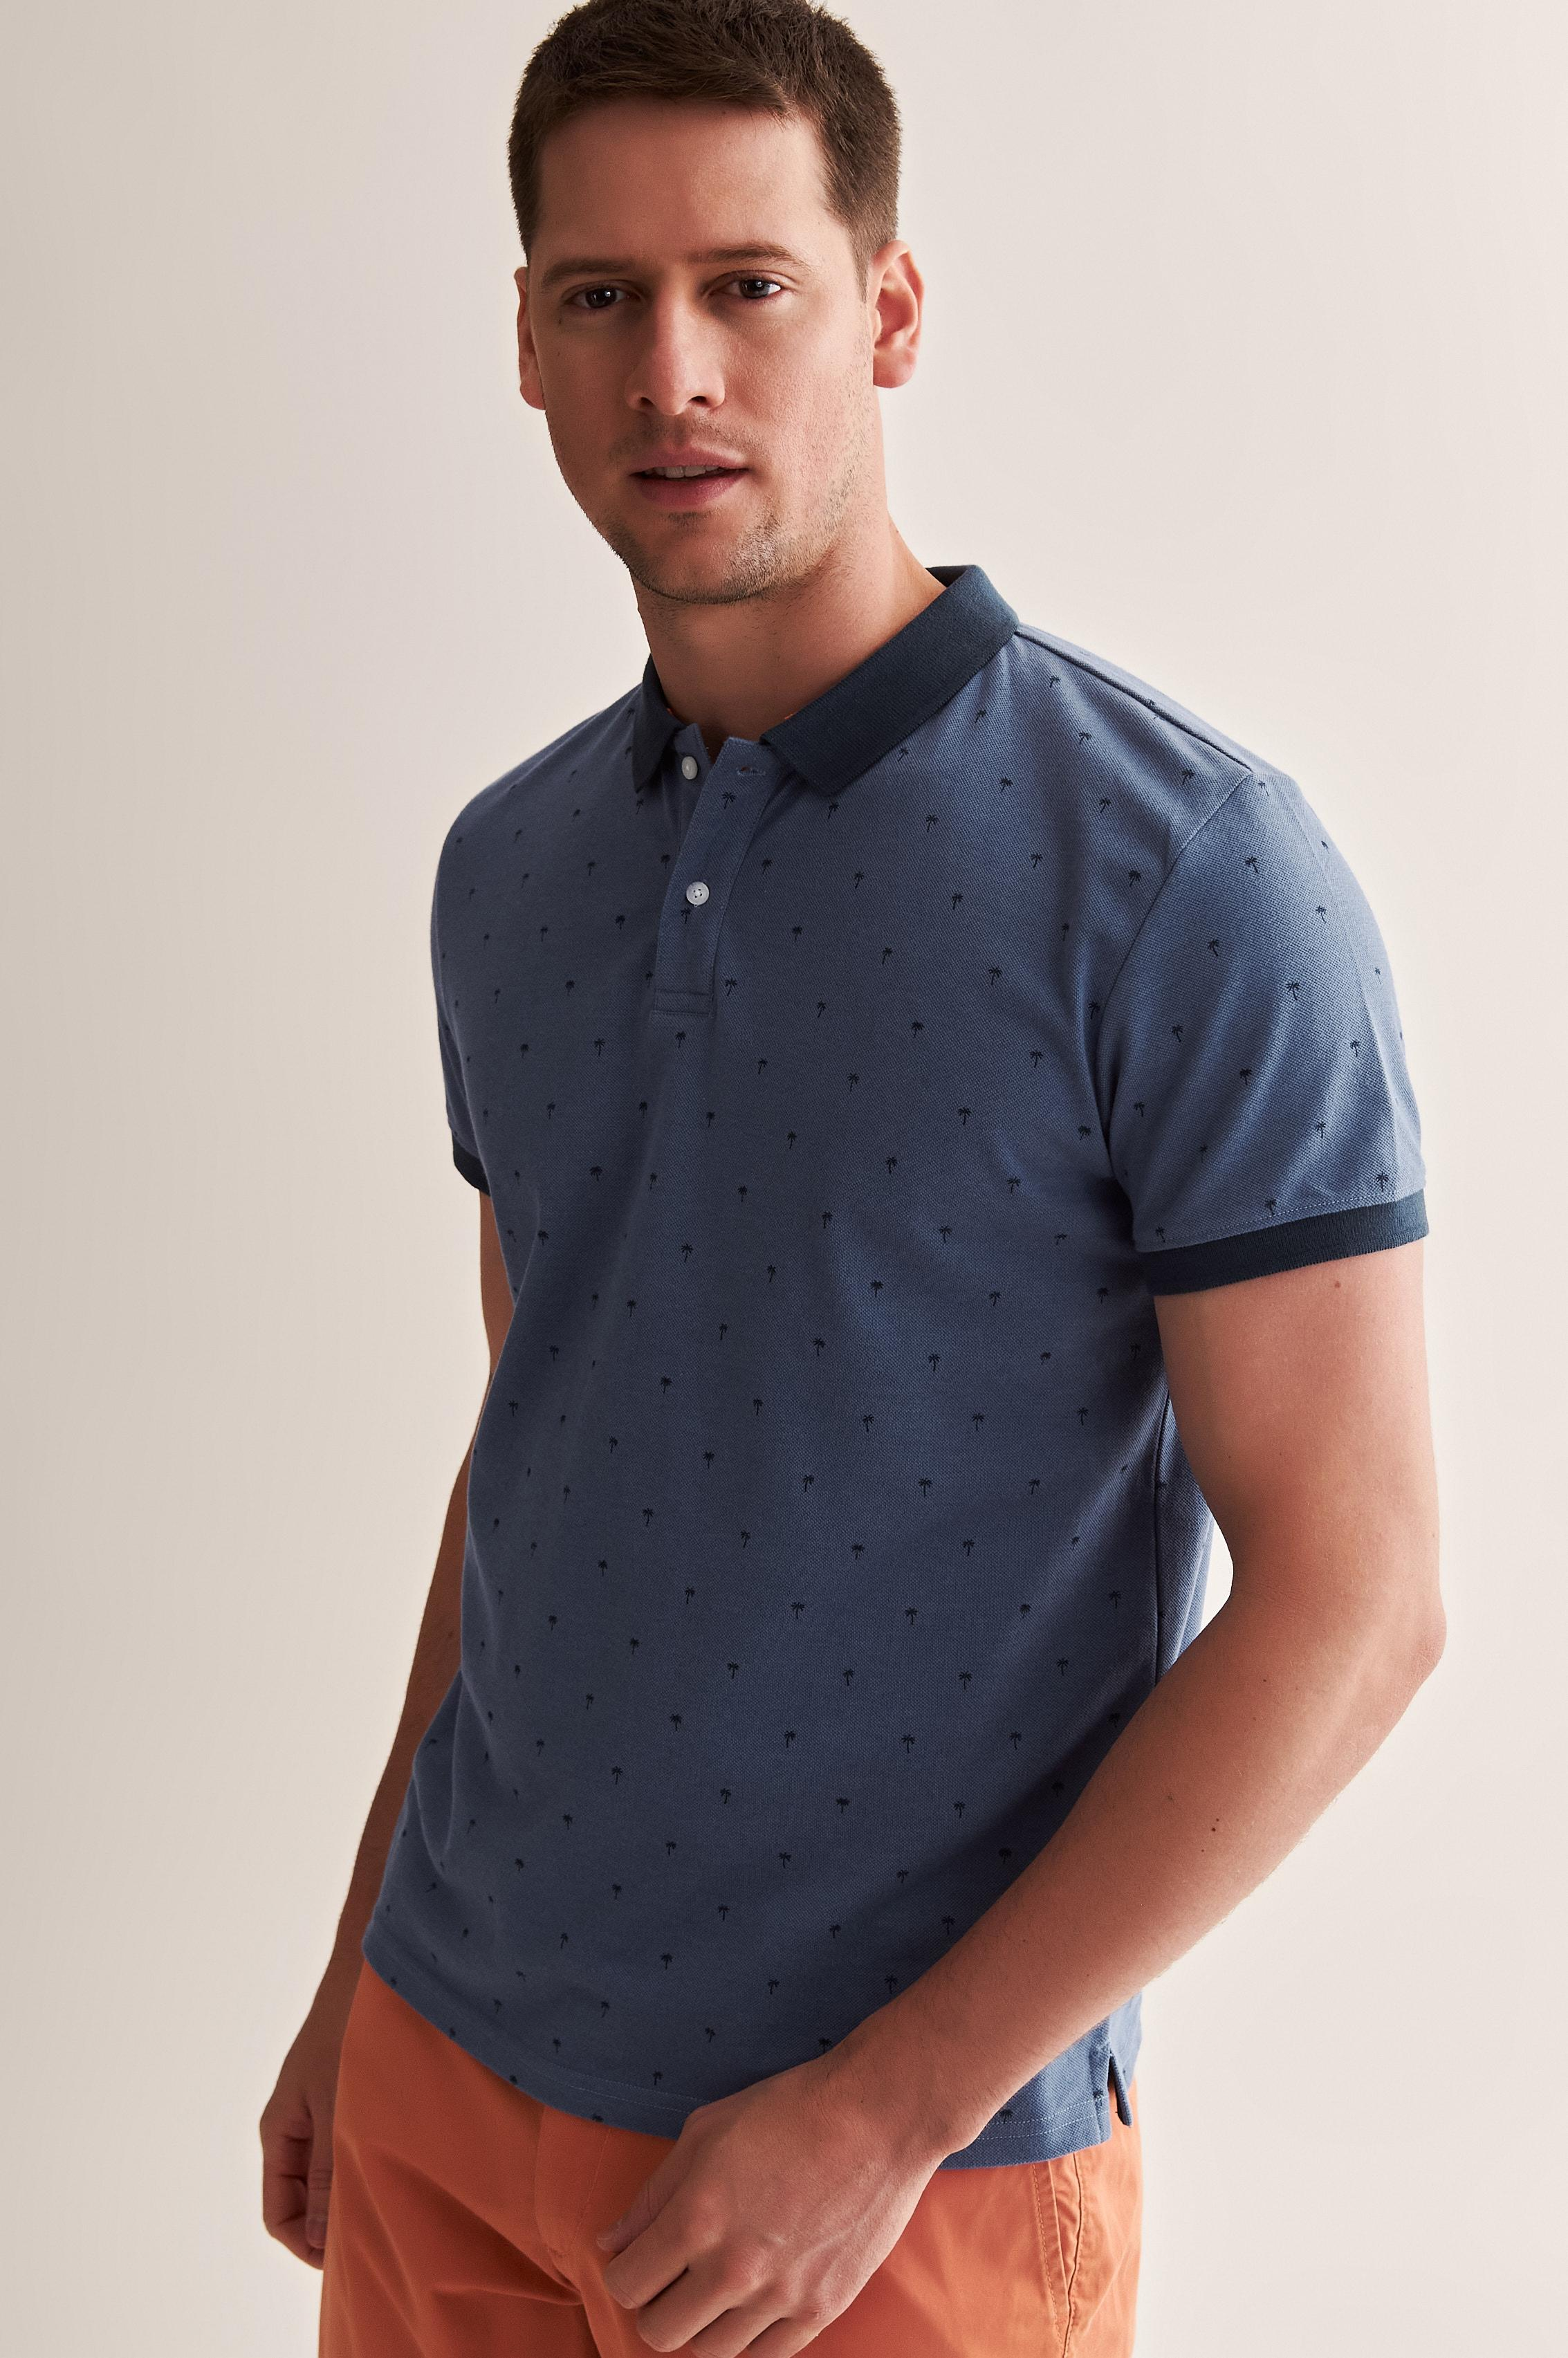 MEN'S KNITTED POLO SHIRT HINT 1